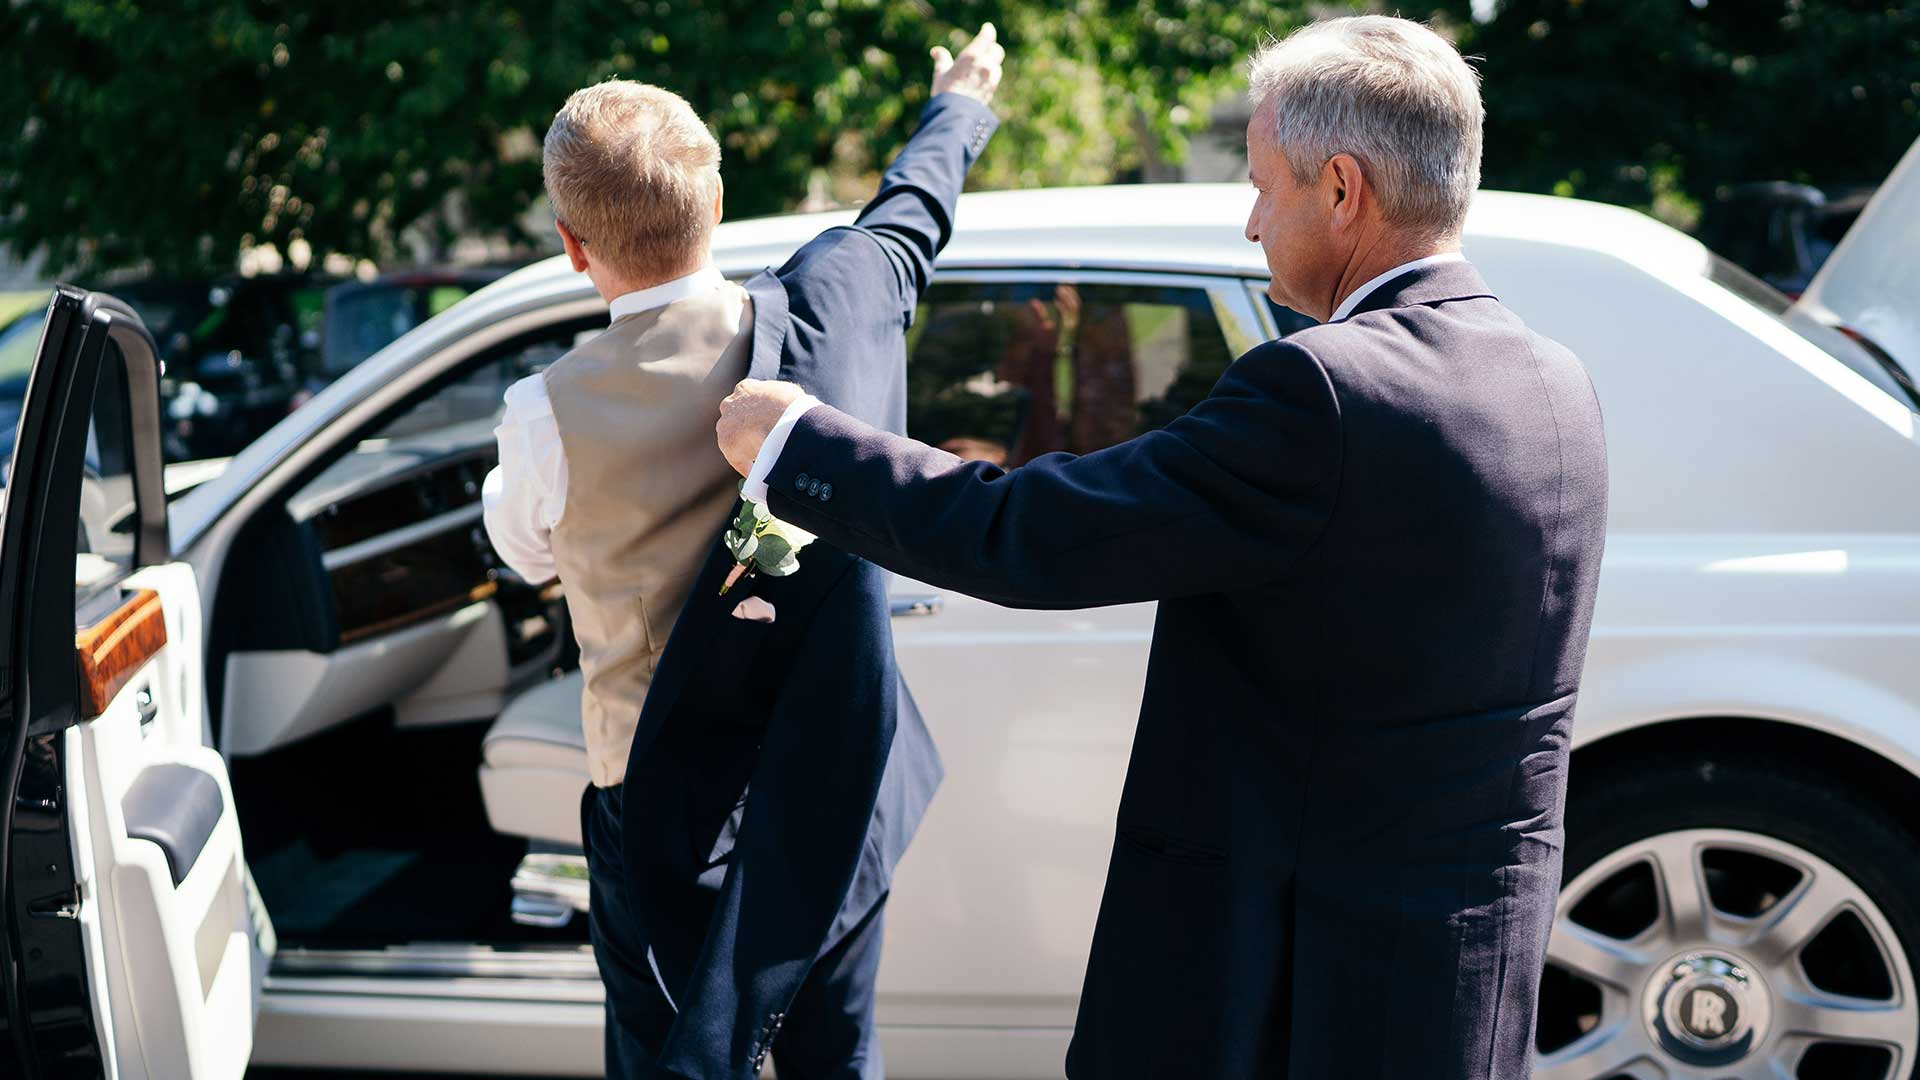 Chauffeur and owner of Azure Wedding Cars, David, assisting with putting a jacket on